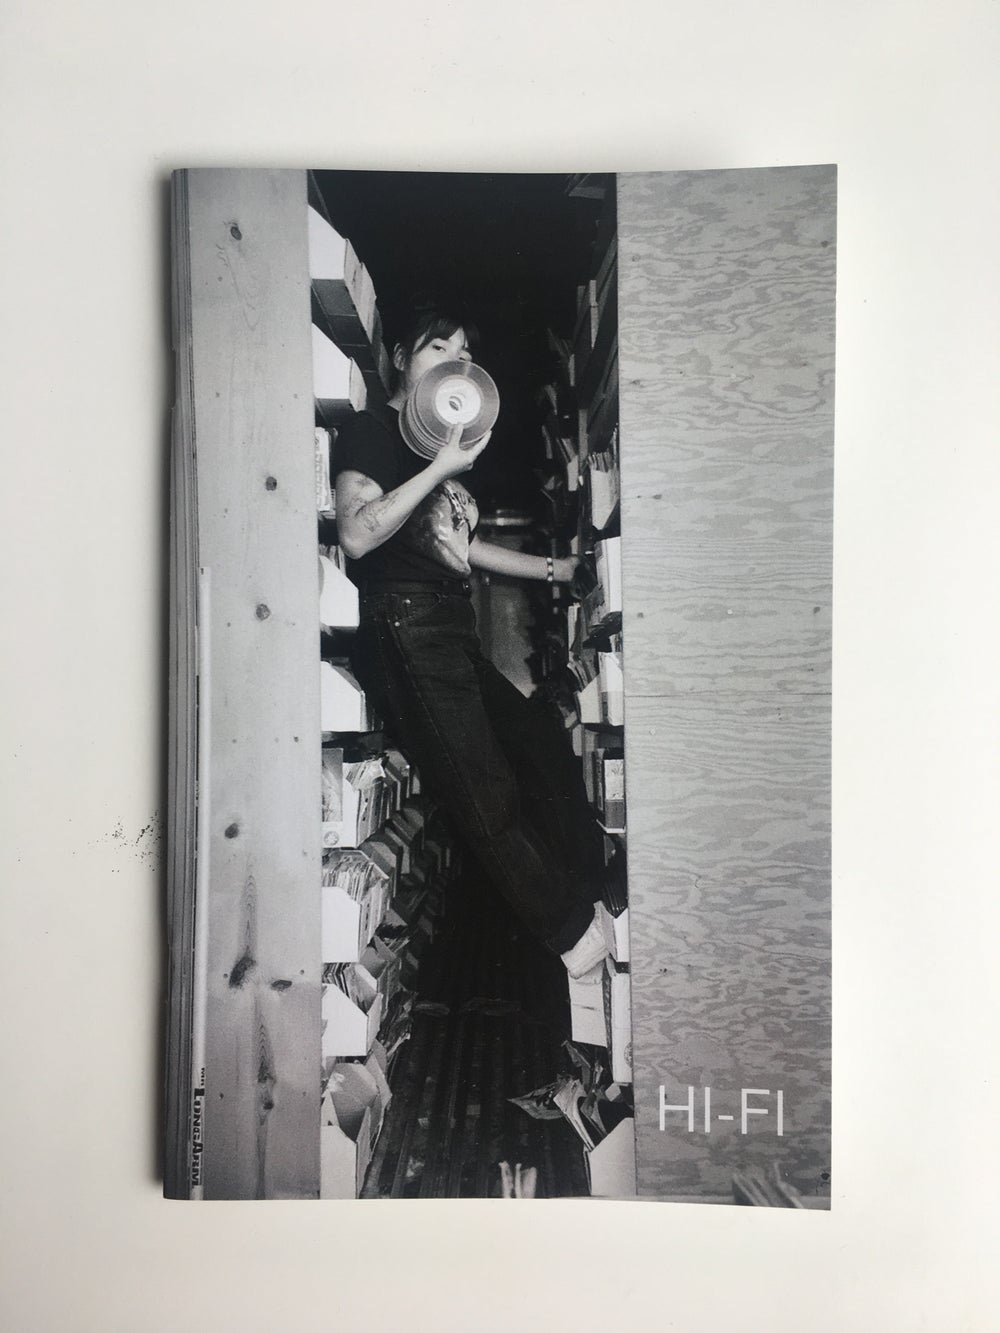 Image of Hi-Fi